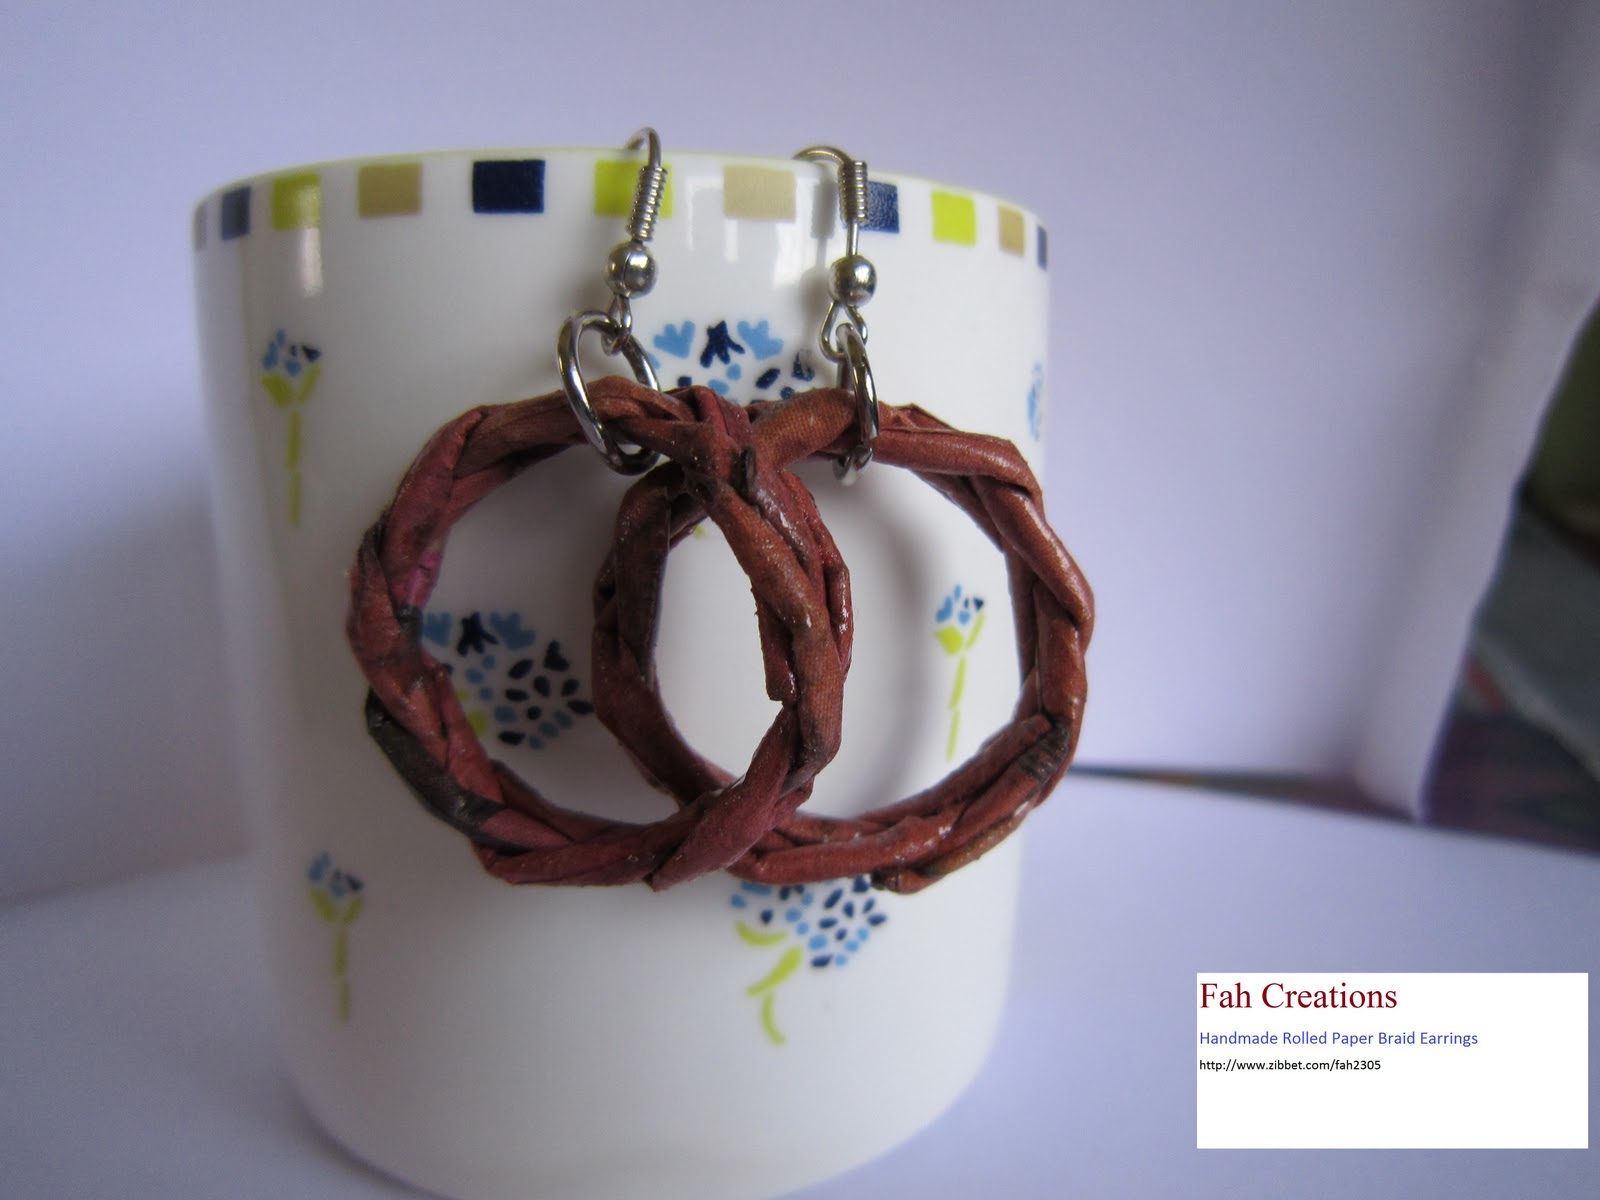 http://1.bp.blogspot.com/-BvjaofdCj54/TpLrcY17-ZI/AAAAAAAAAG4/mvX4nhxl5js/s1600/Handmade+Rolled+Paper+Braid+Earrings++4.jpg